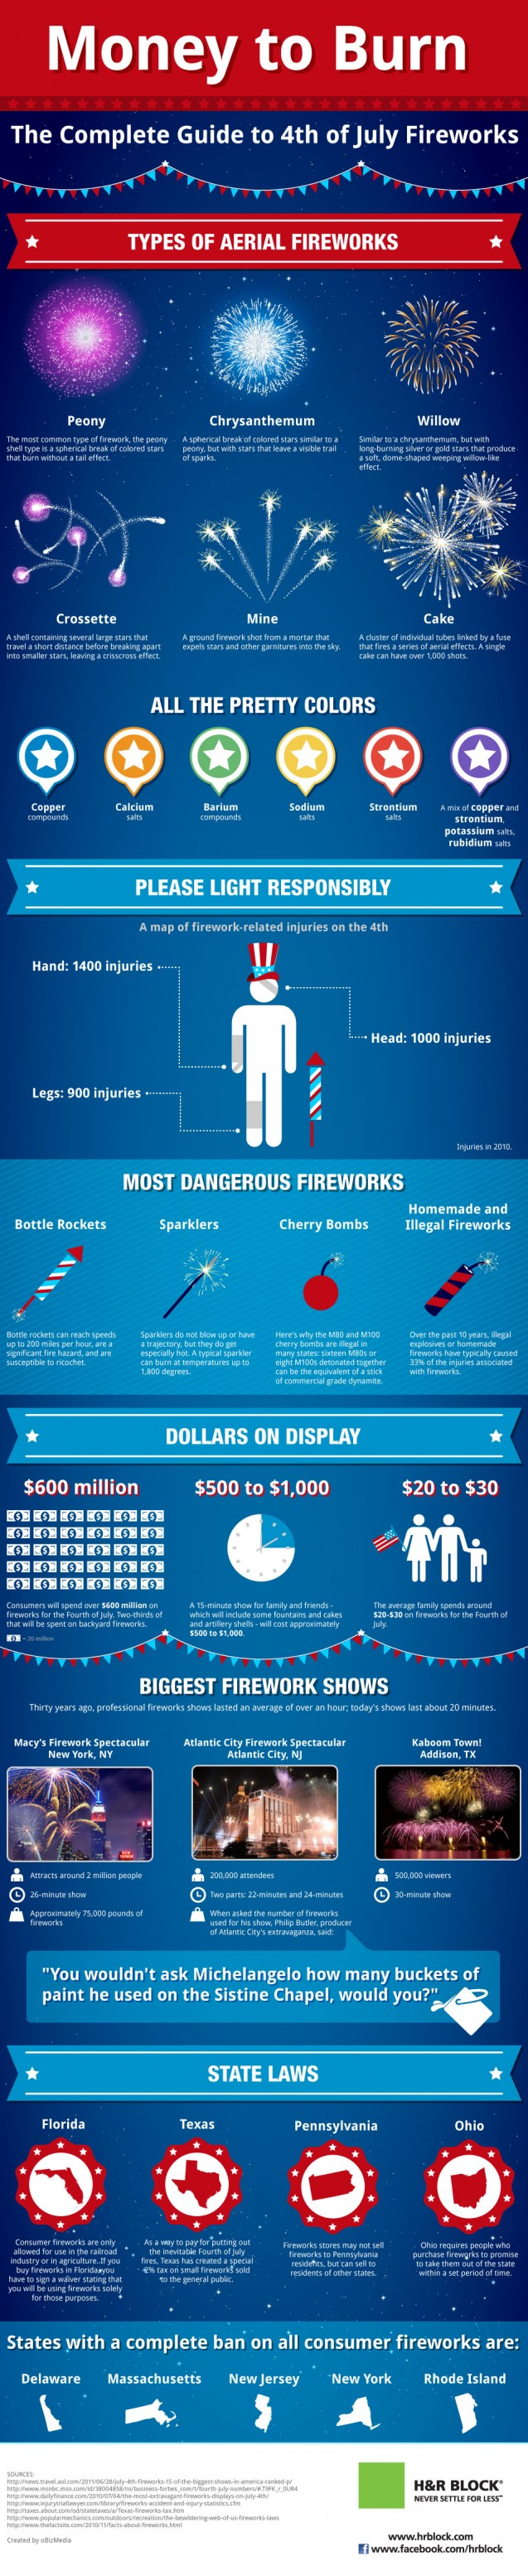 4th of July Food and Fireworks Spending: Interesting Stats